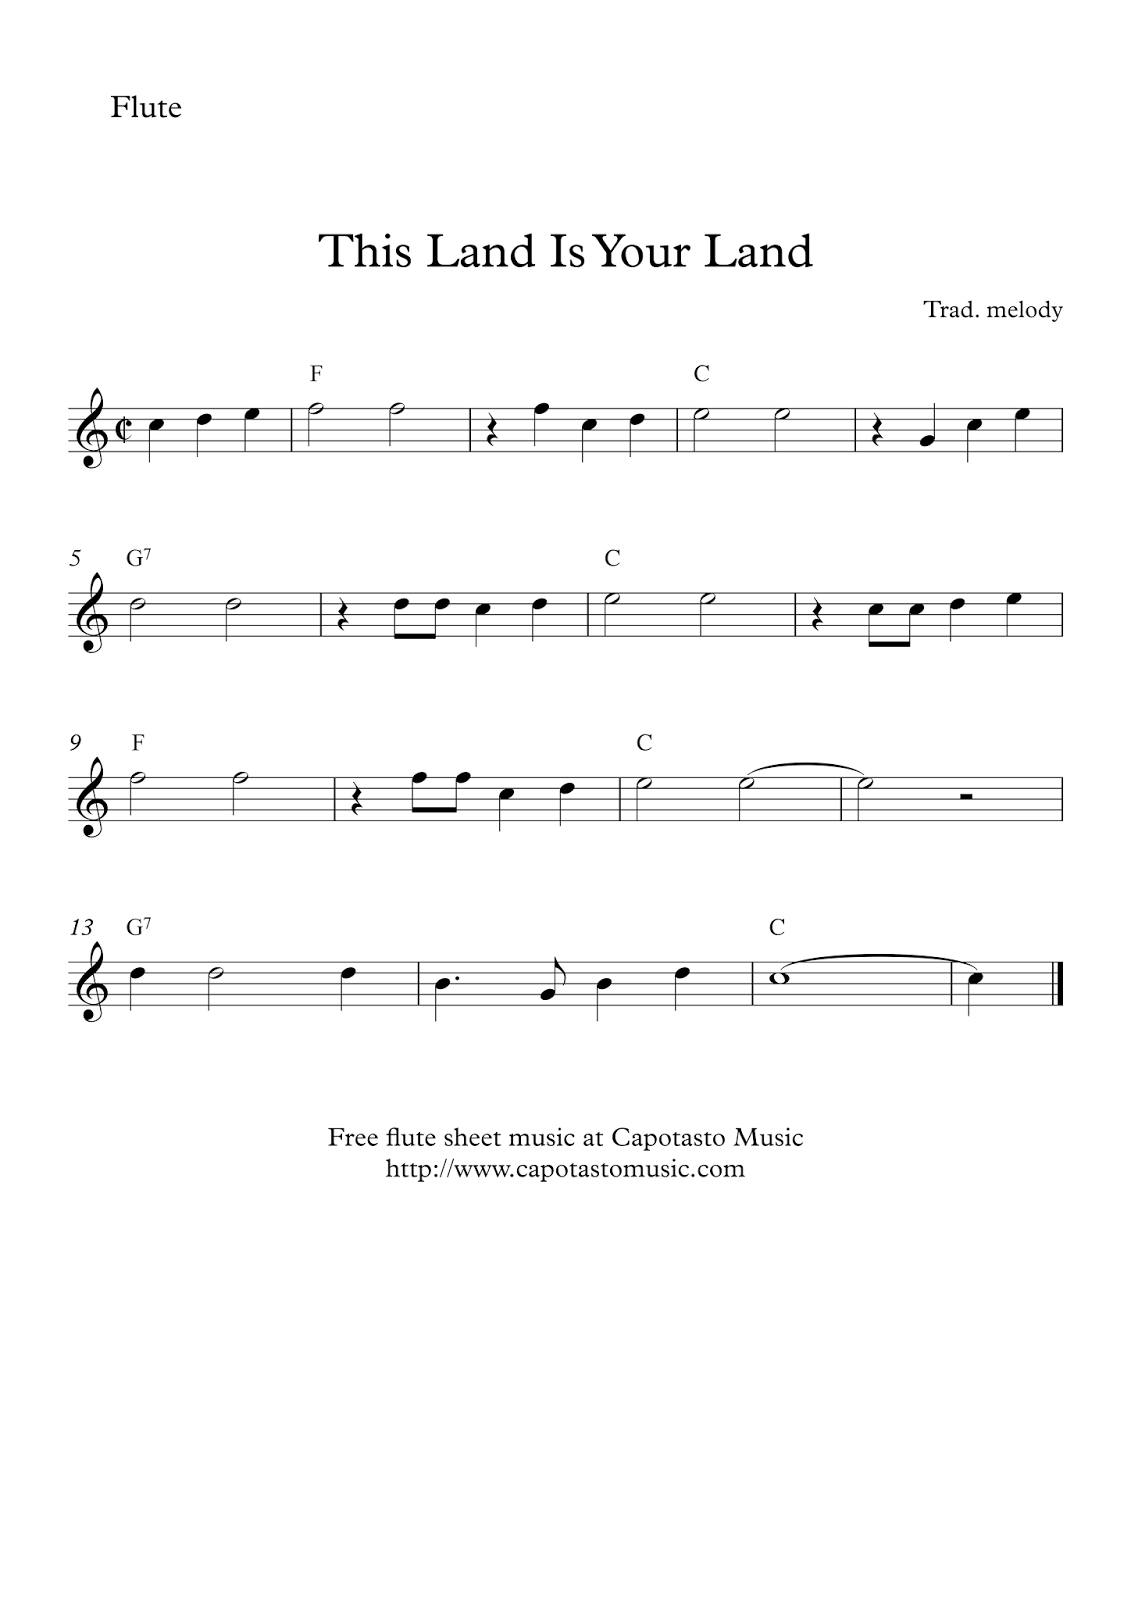 This Land Is Your Land - Free Easy Flute Sheet Music - Free Printable Flute Music